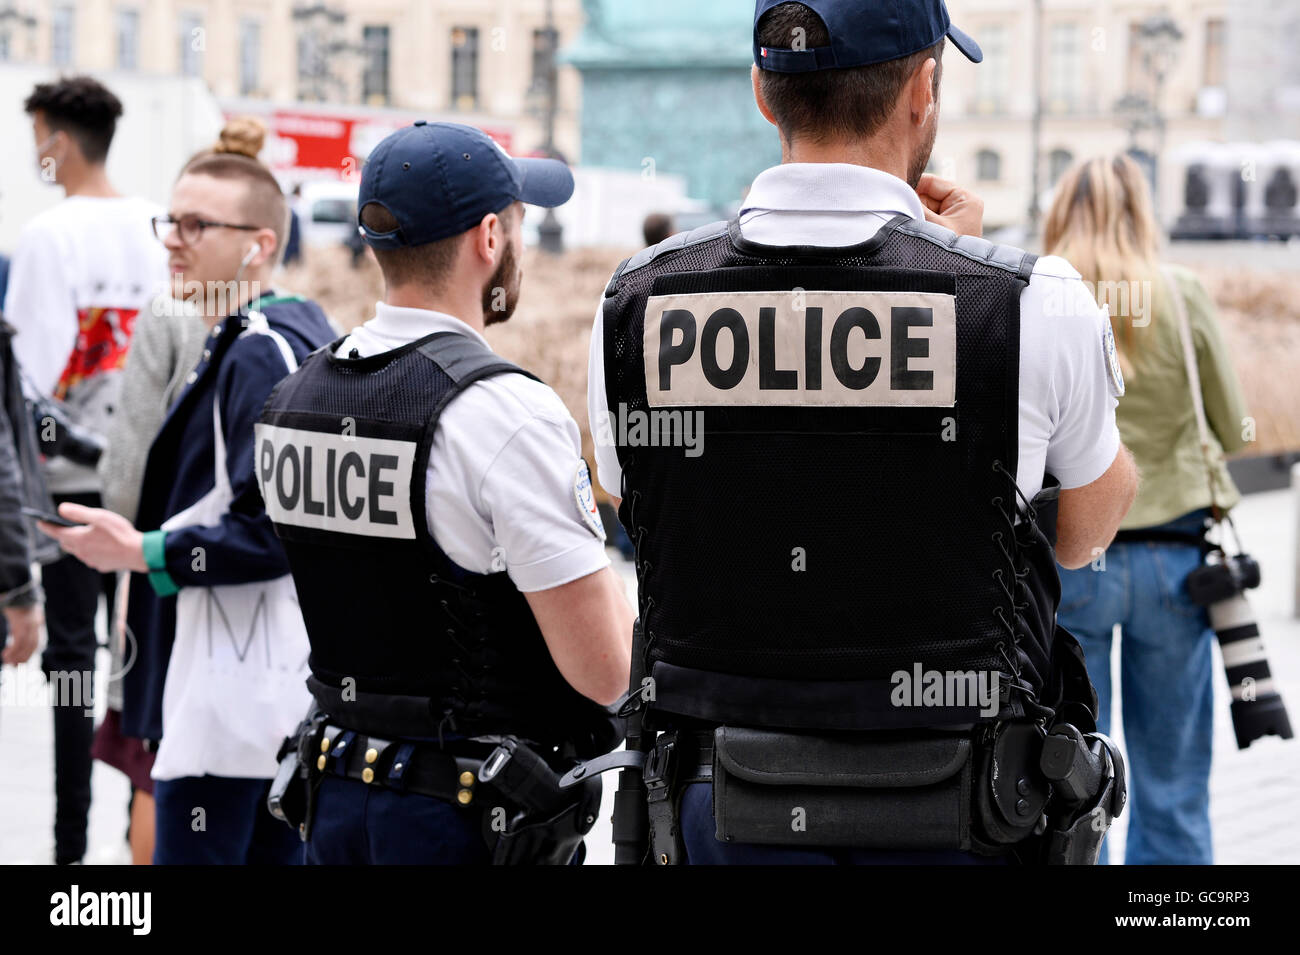 French police officers on official event, Paris Fashion Week 2016 - Stock Image